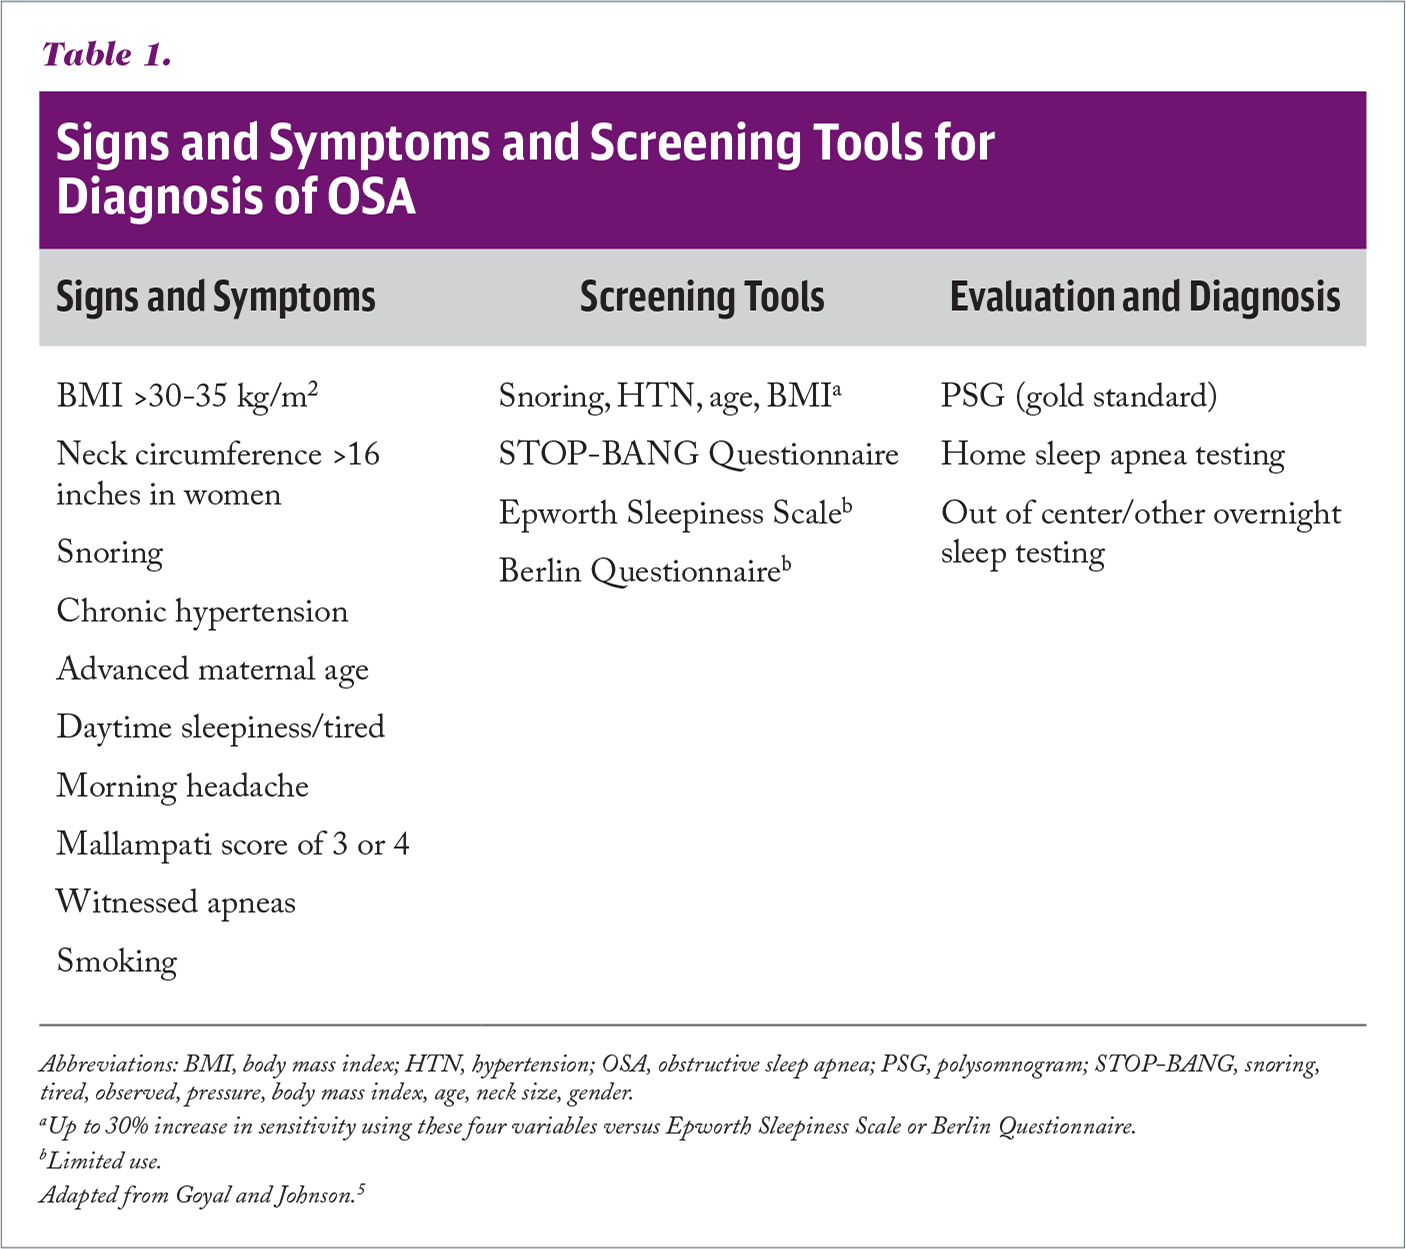 Signs and Symptoms and Screening Tools for Diagnosis of OSA